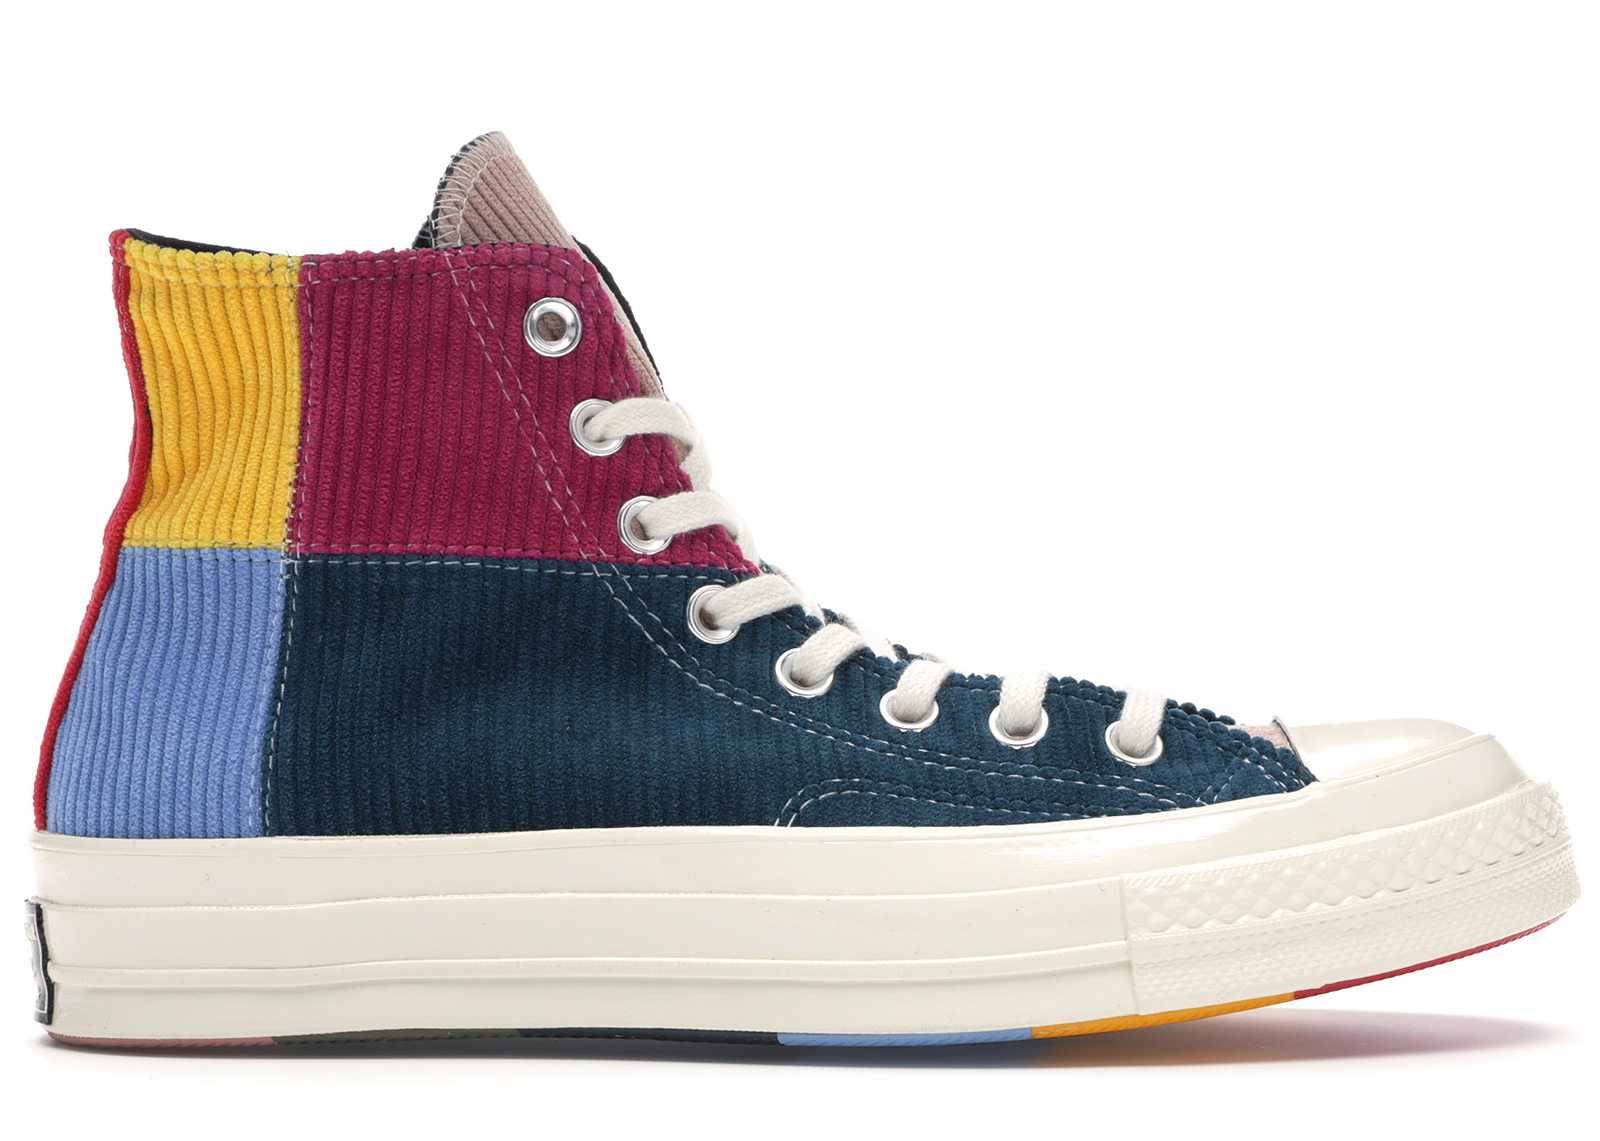 Converse Chuck Taylor All Star 70s Hi Corduroy Patchwork Gold Navy